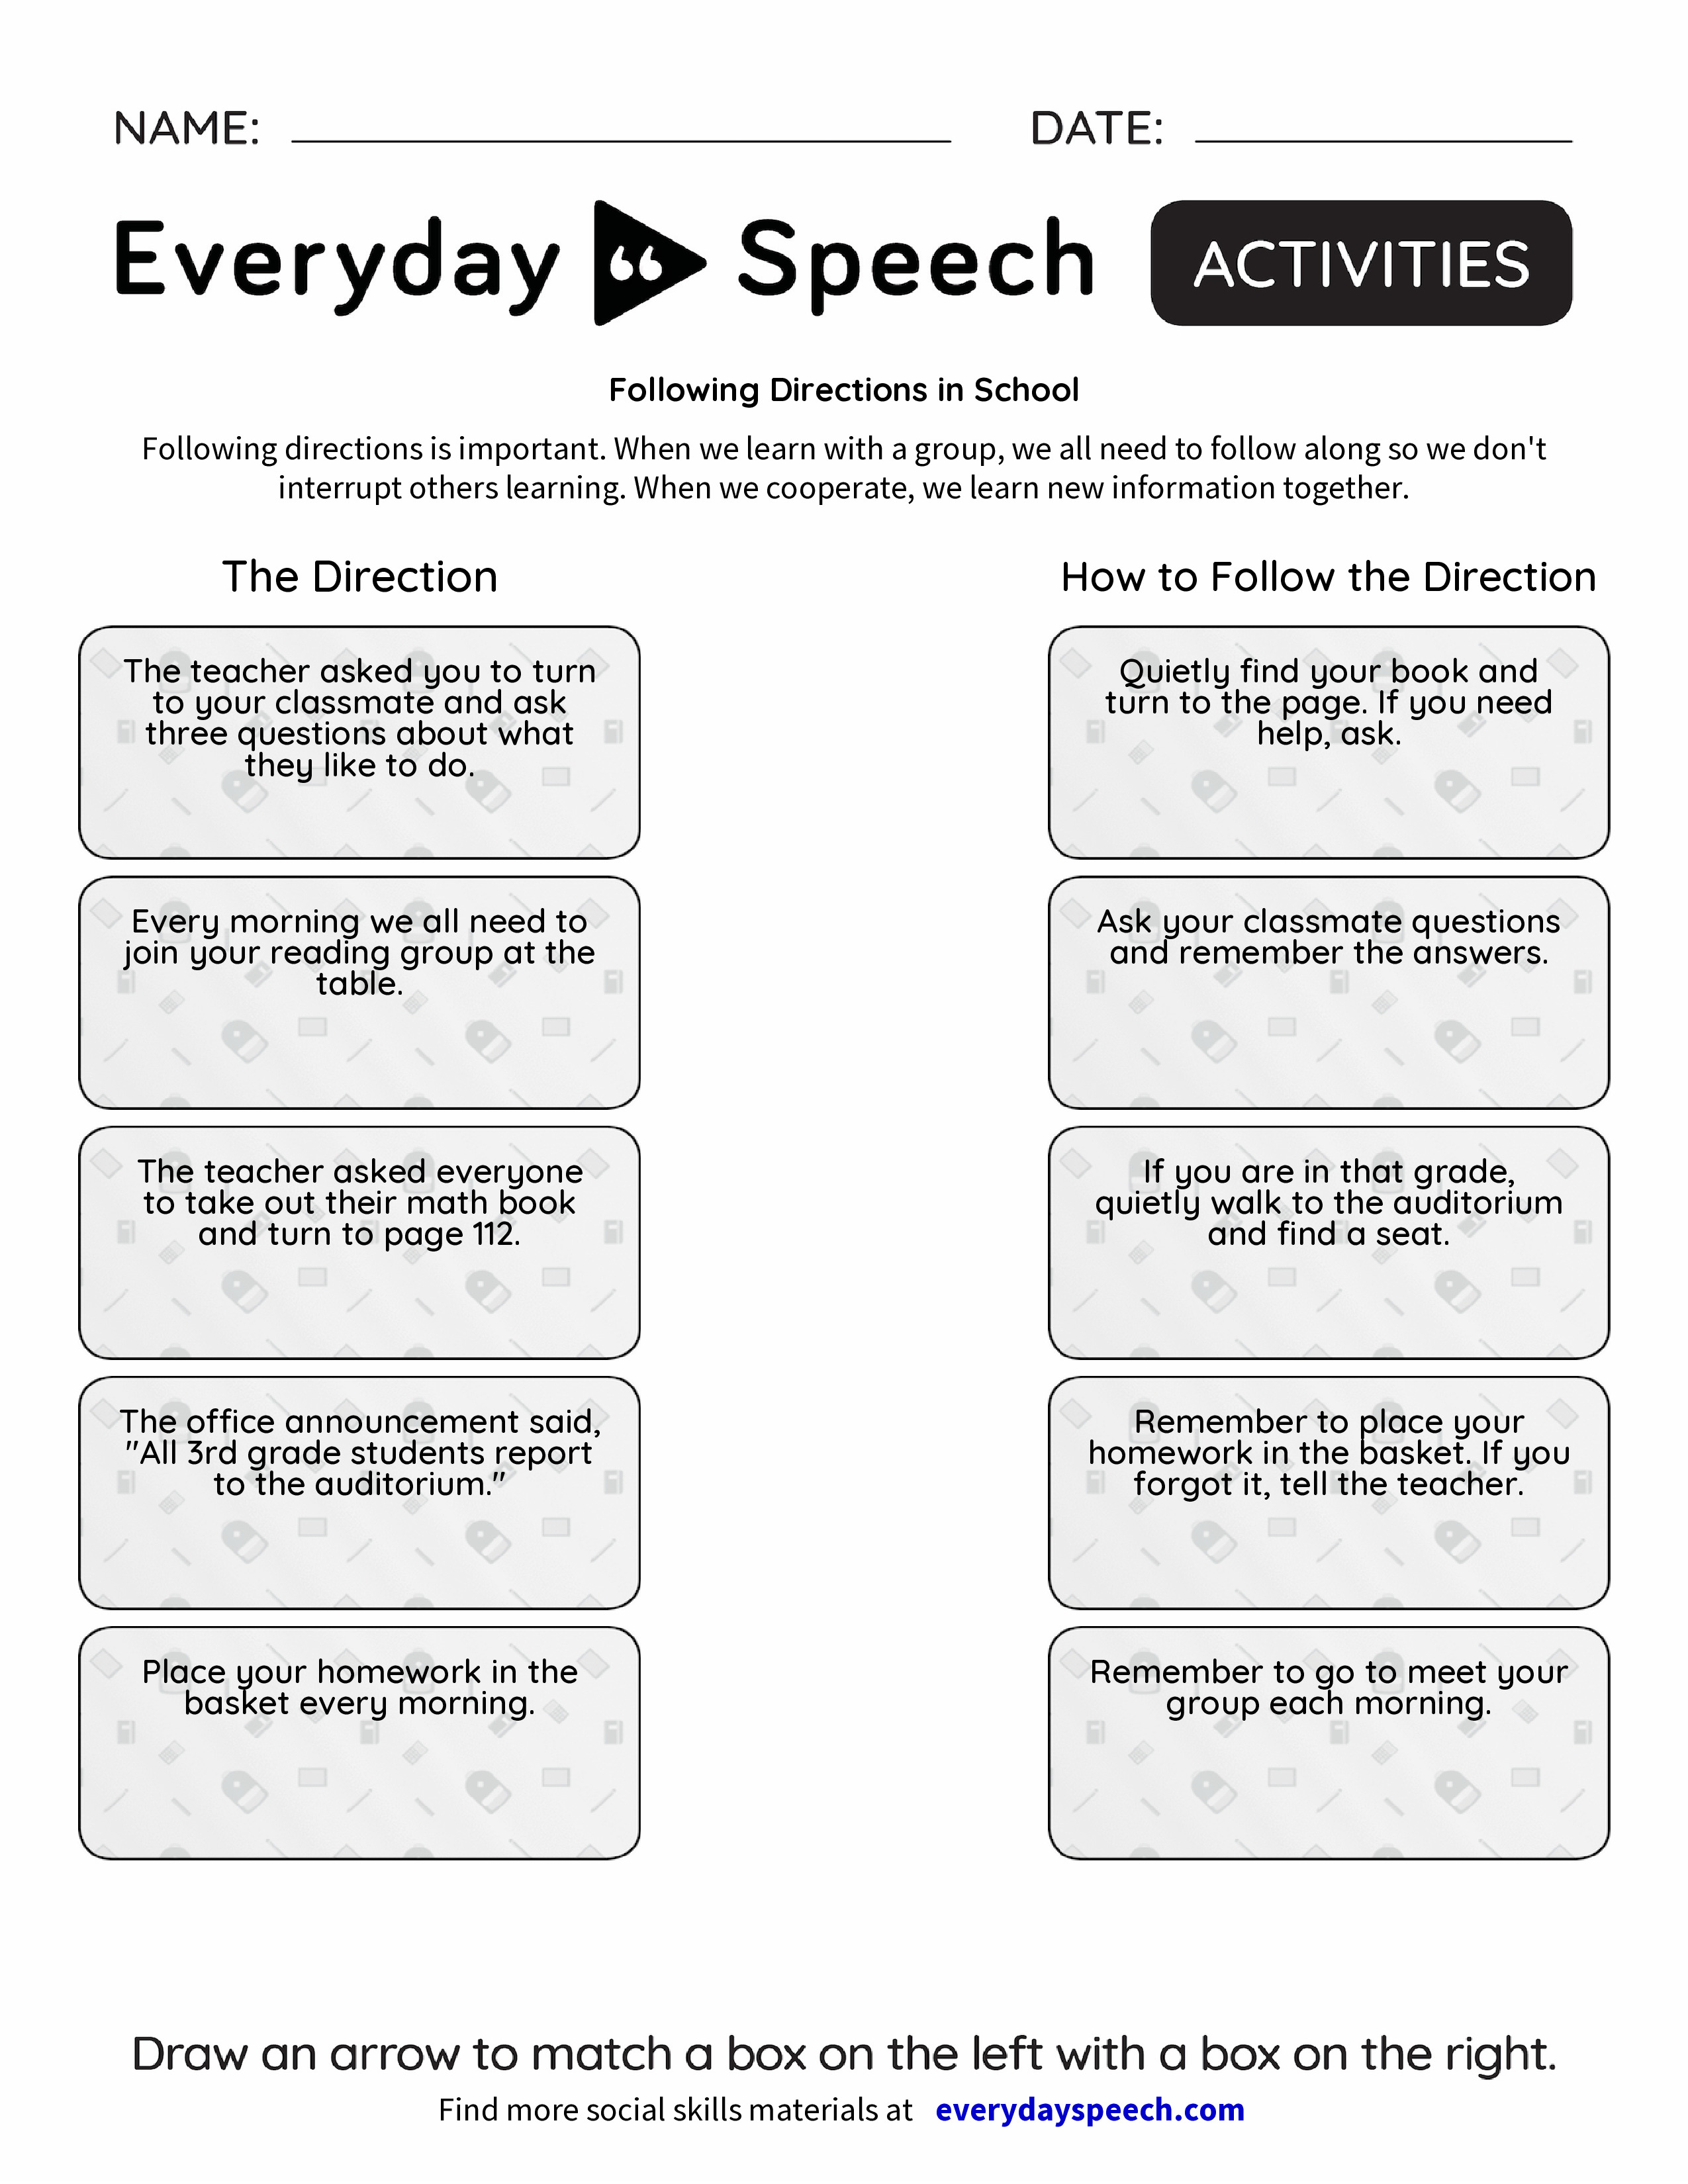 Following Directions in School - Everyday Speech - Everyday